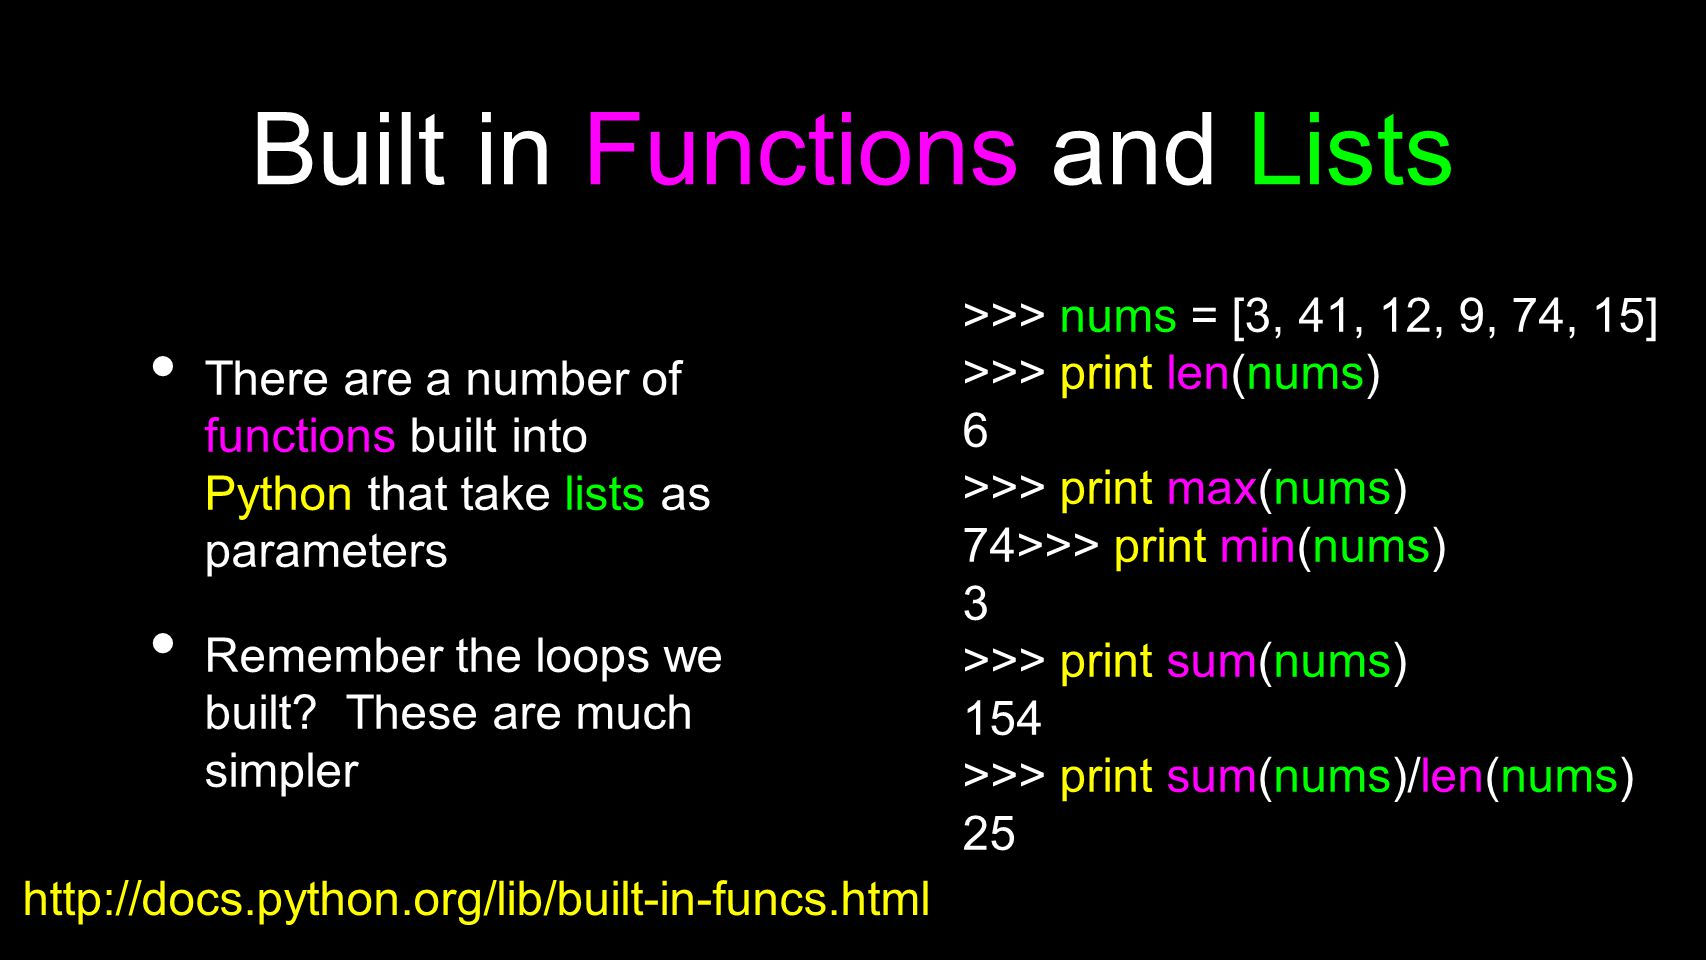 Built in Functions and Lists